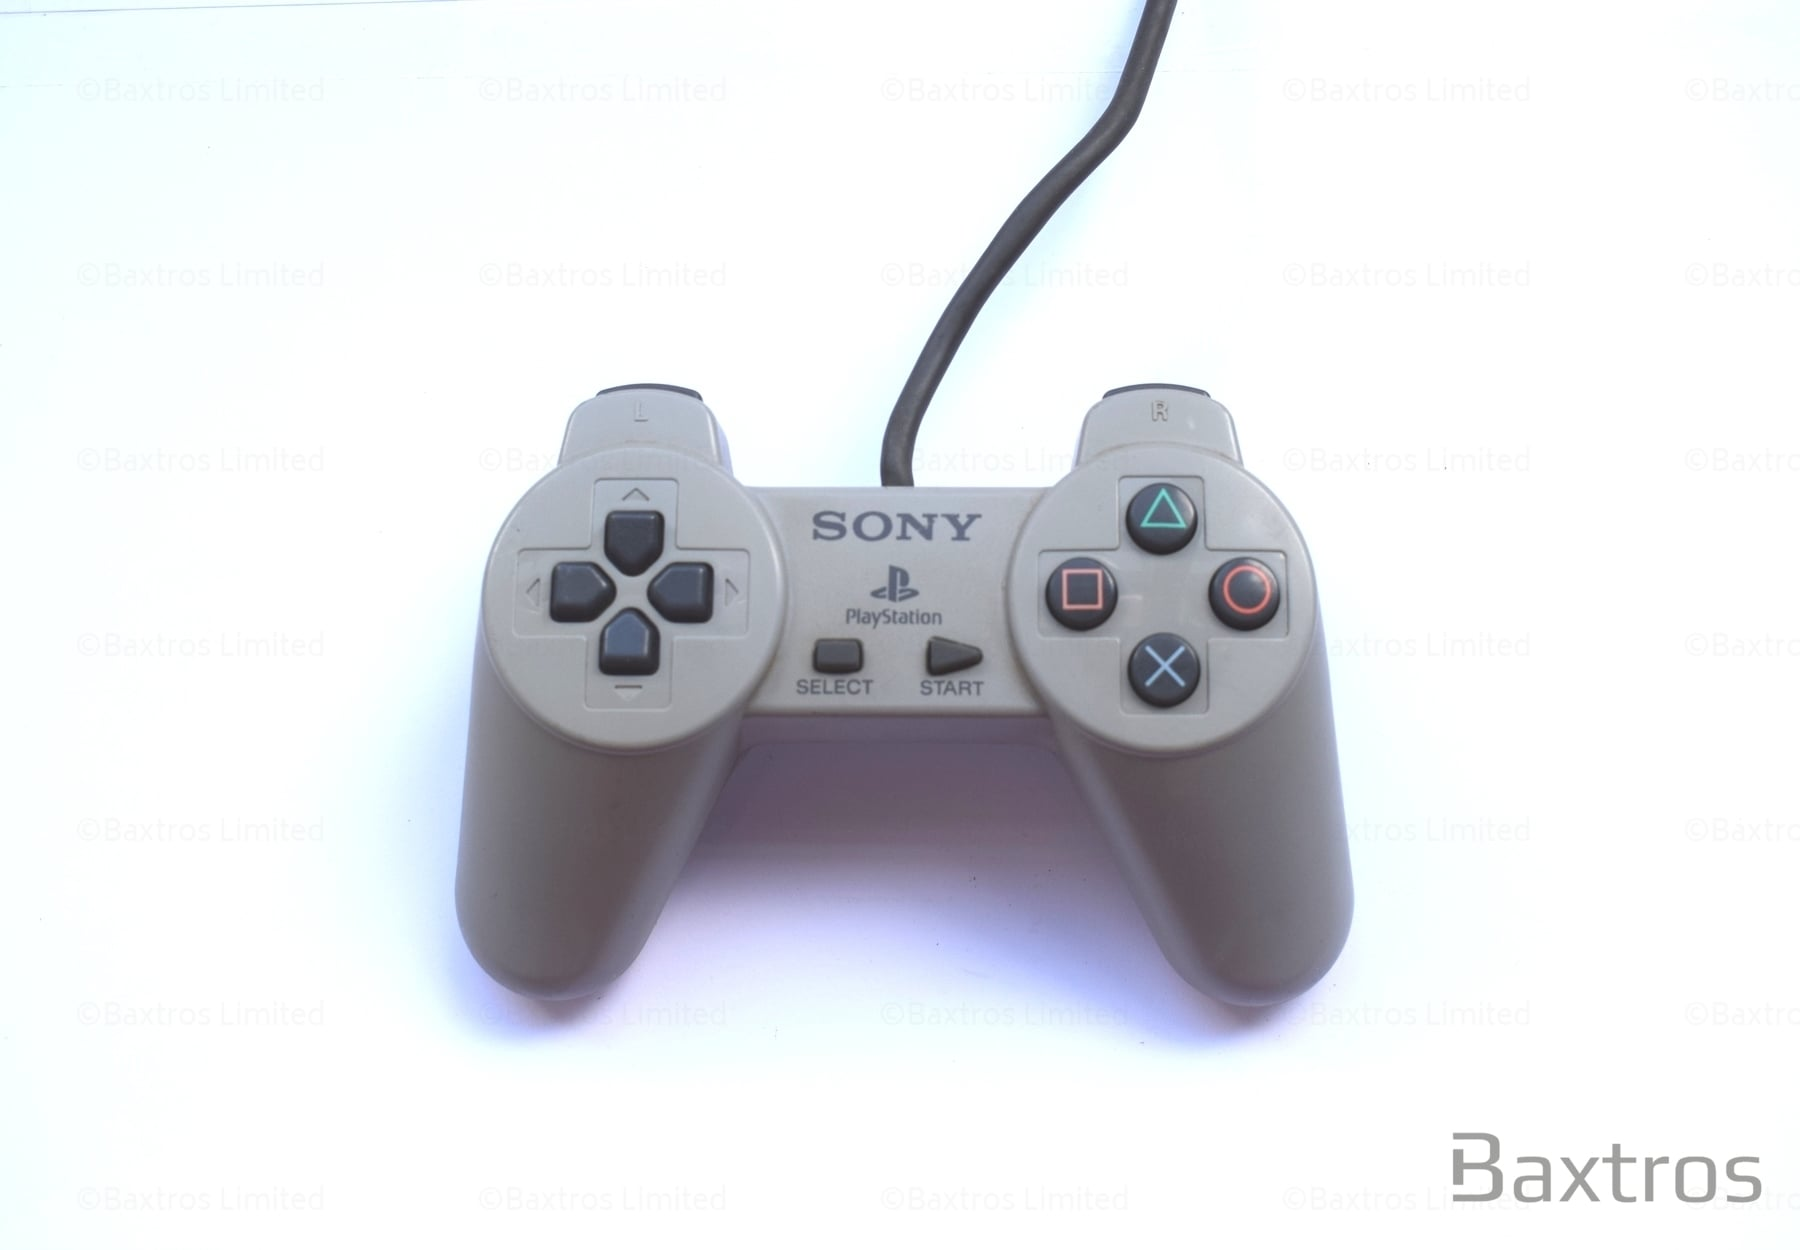 Ps1 Controller Playstation 3 Ps3 Psx To Usb Wiring Diagram Download